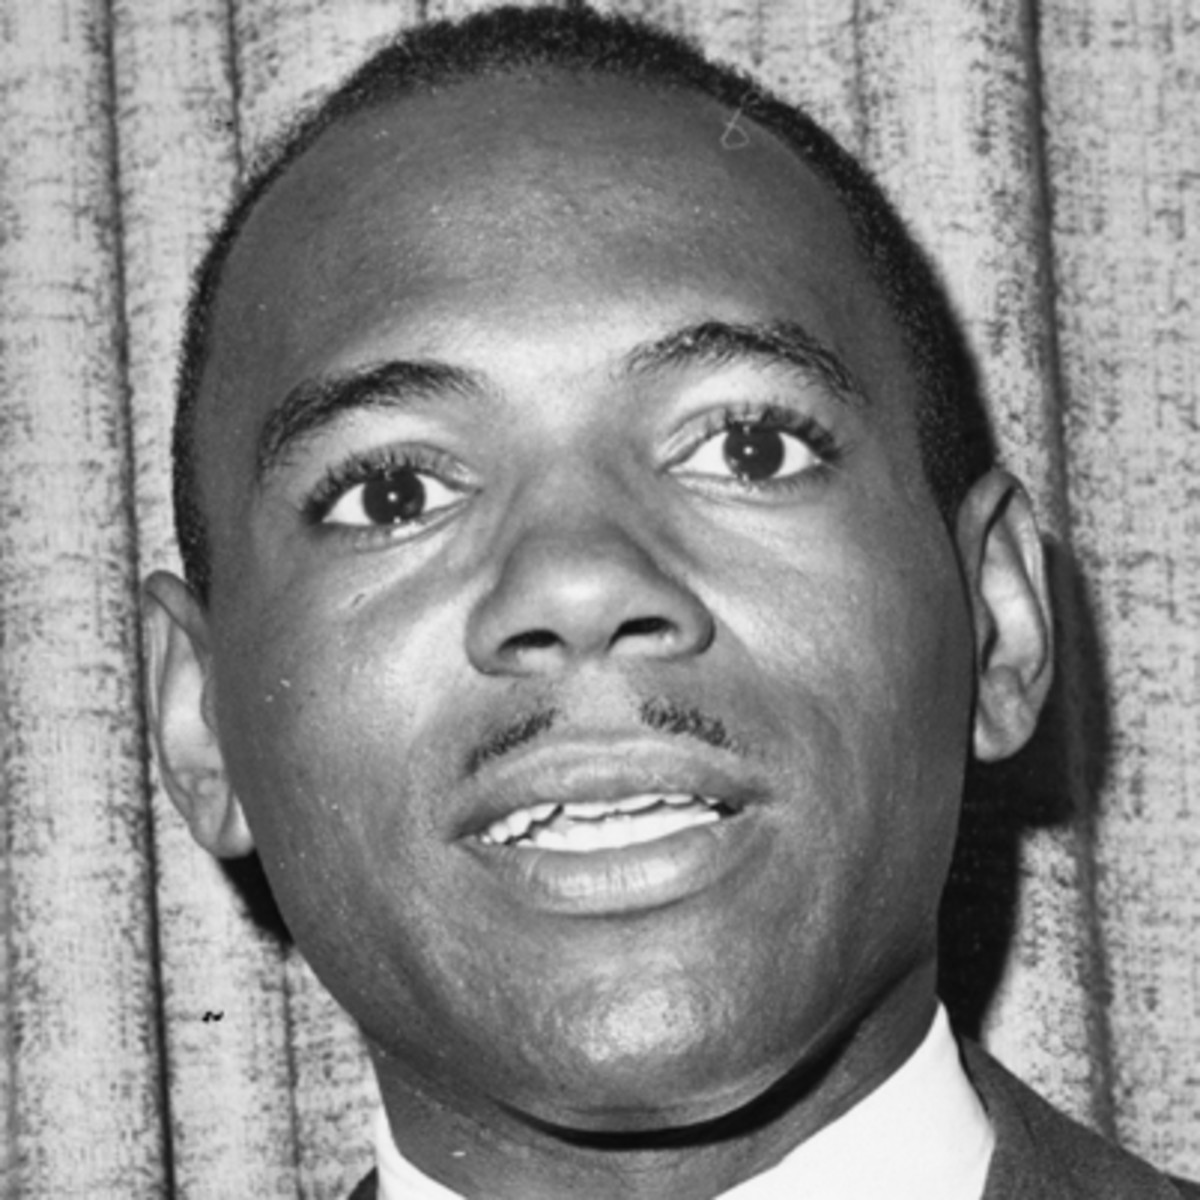 james meredith James h meredith facts: as the first black to attend the university of mississippi, james h meredith (born 1933) scored one of the earliest important victories against segregation in mississippi.